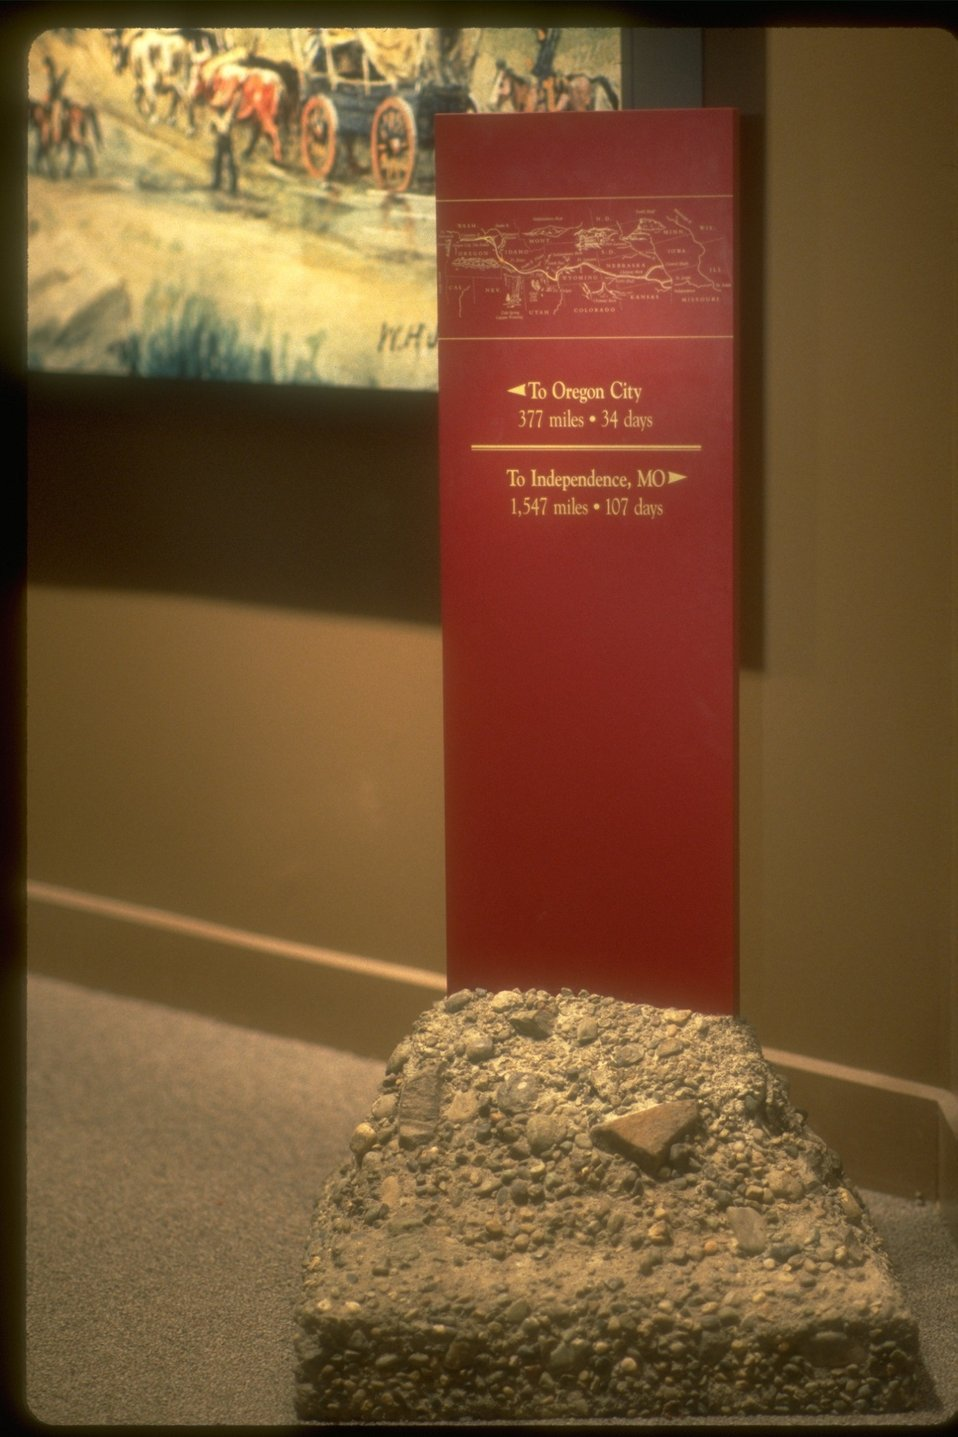 Mile post marker on display at the NHOTIC.